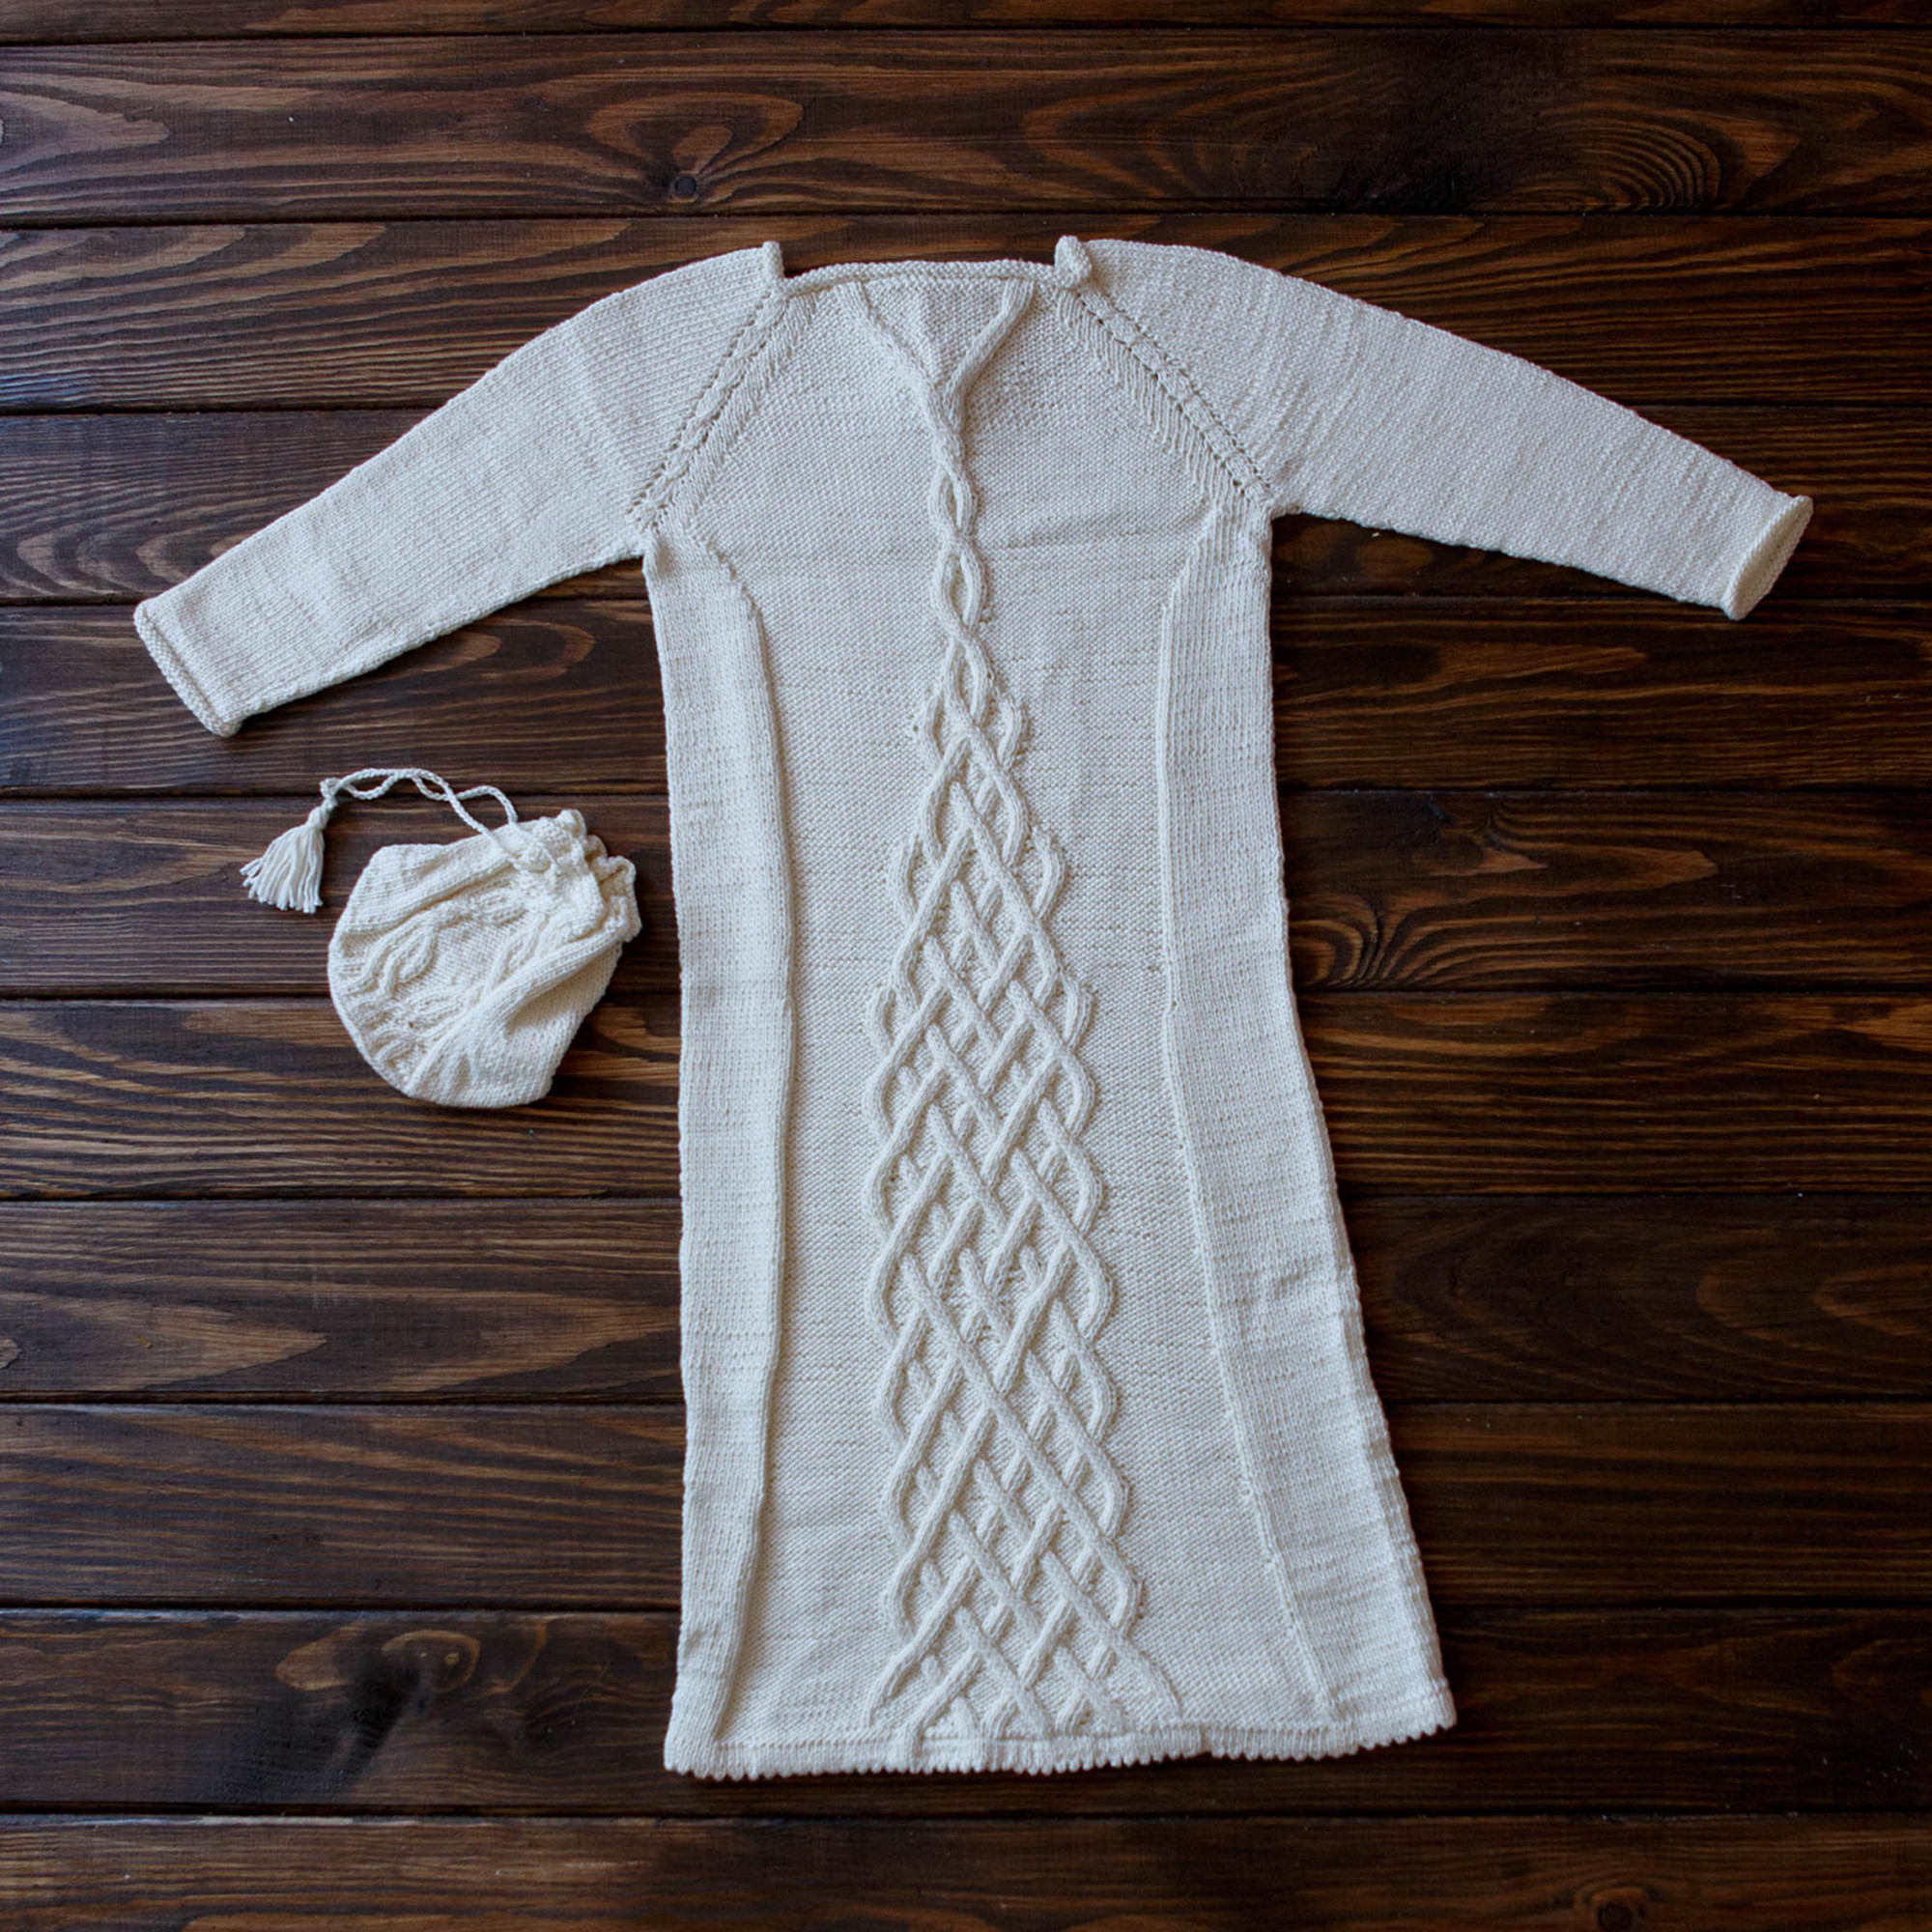 Cable Knit Dress Boys' Blessing Outfit